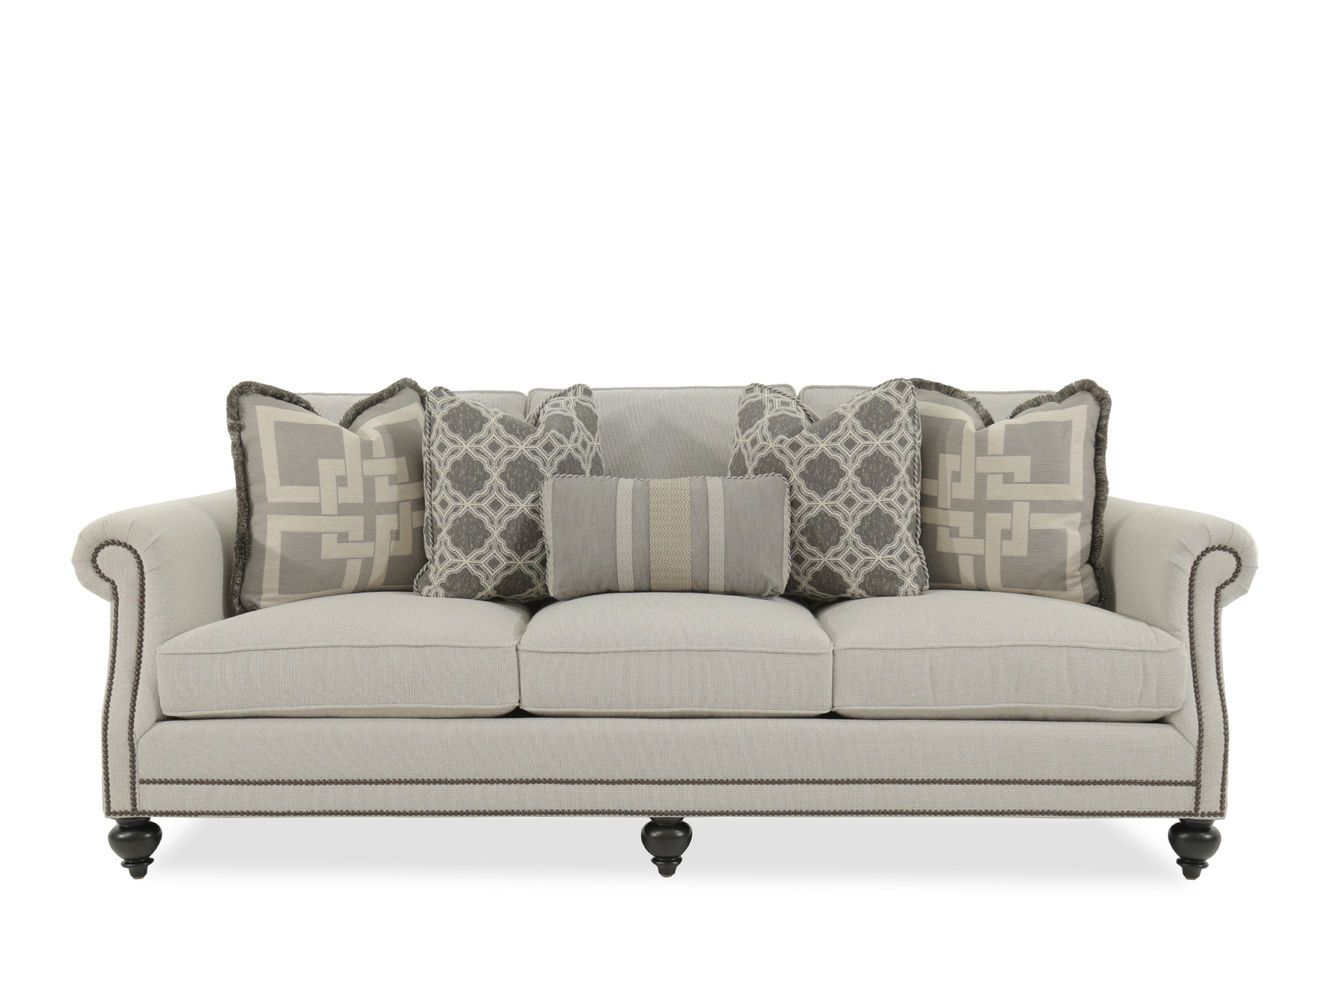 Marvelous Bernhardt Brae Beige Sofa | Mathis Brothers Furniture